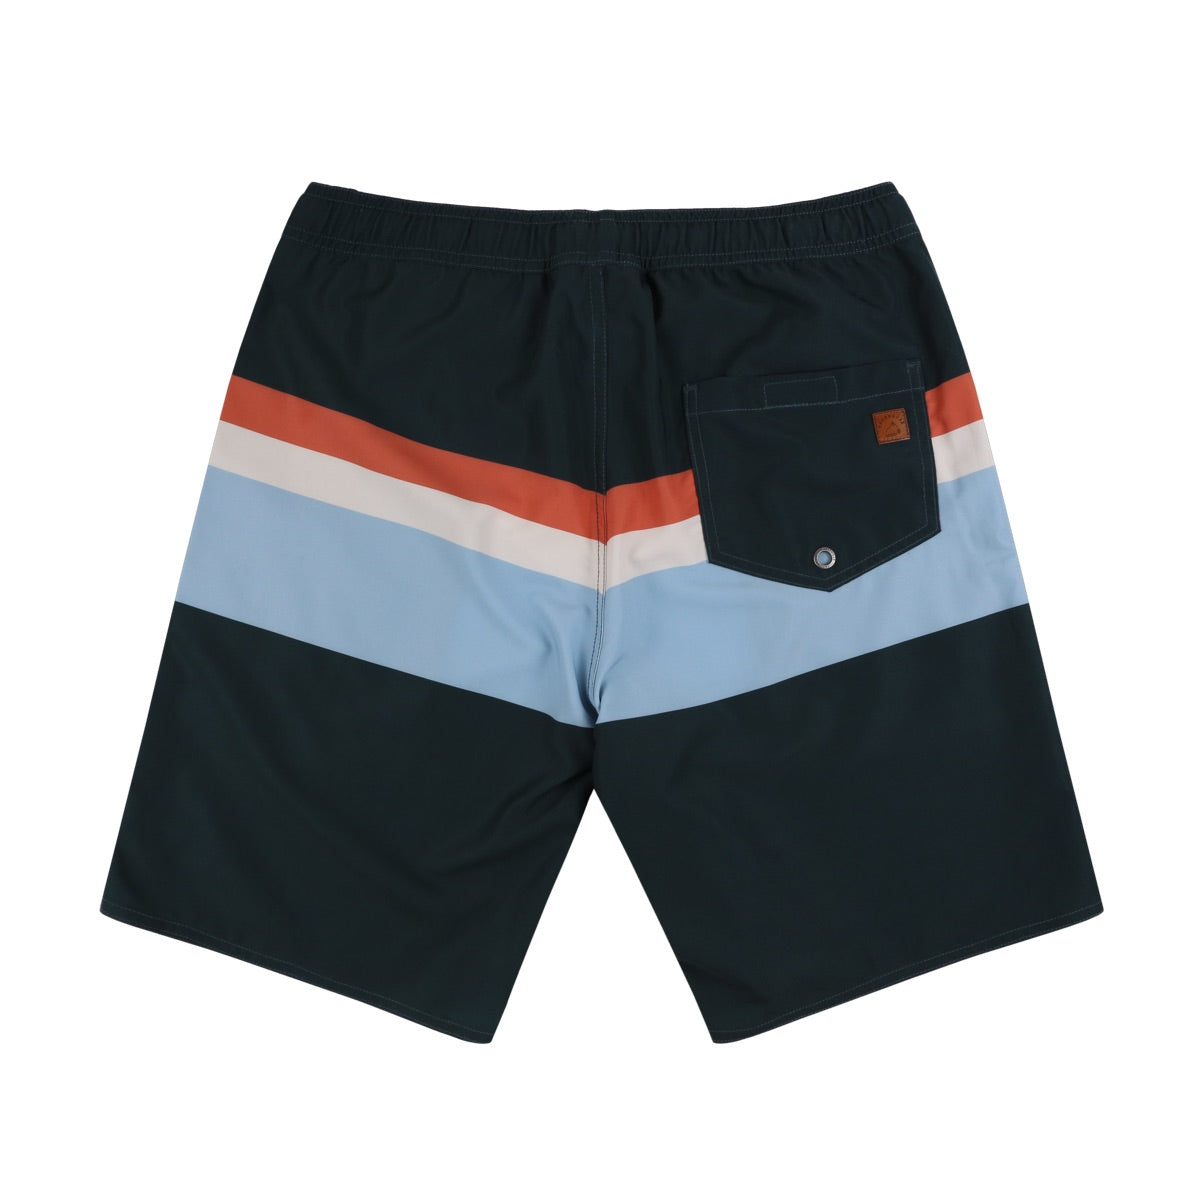 Lineup Hybrid Shorts - Dark Grey image 5